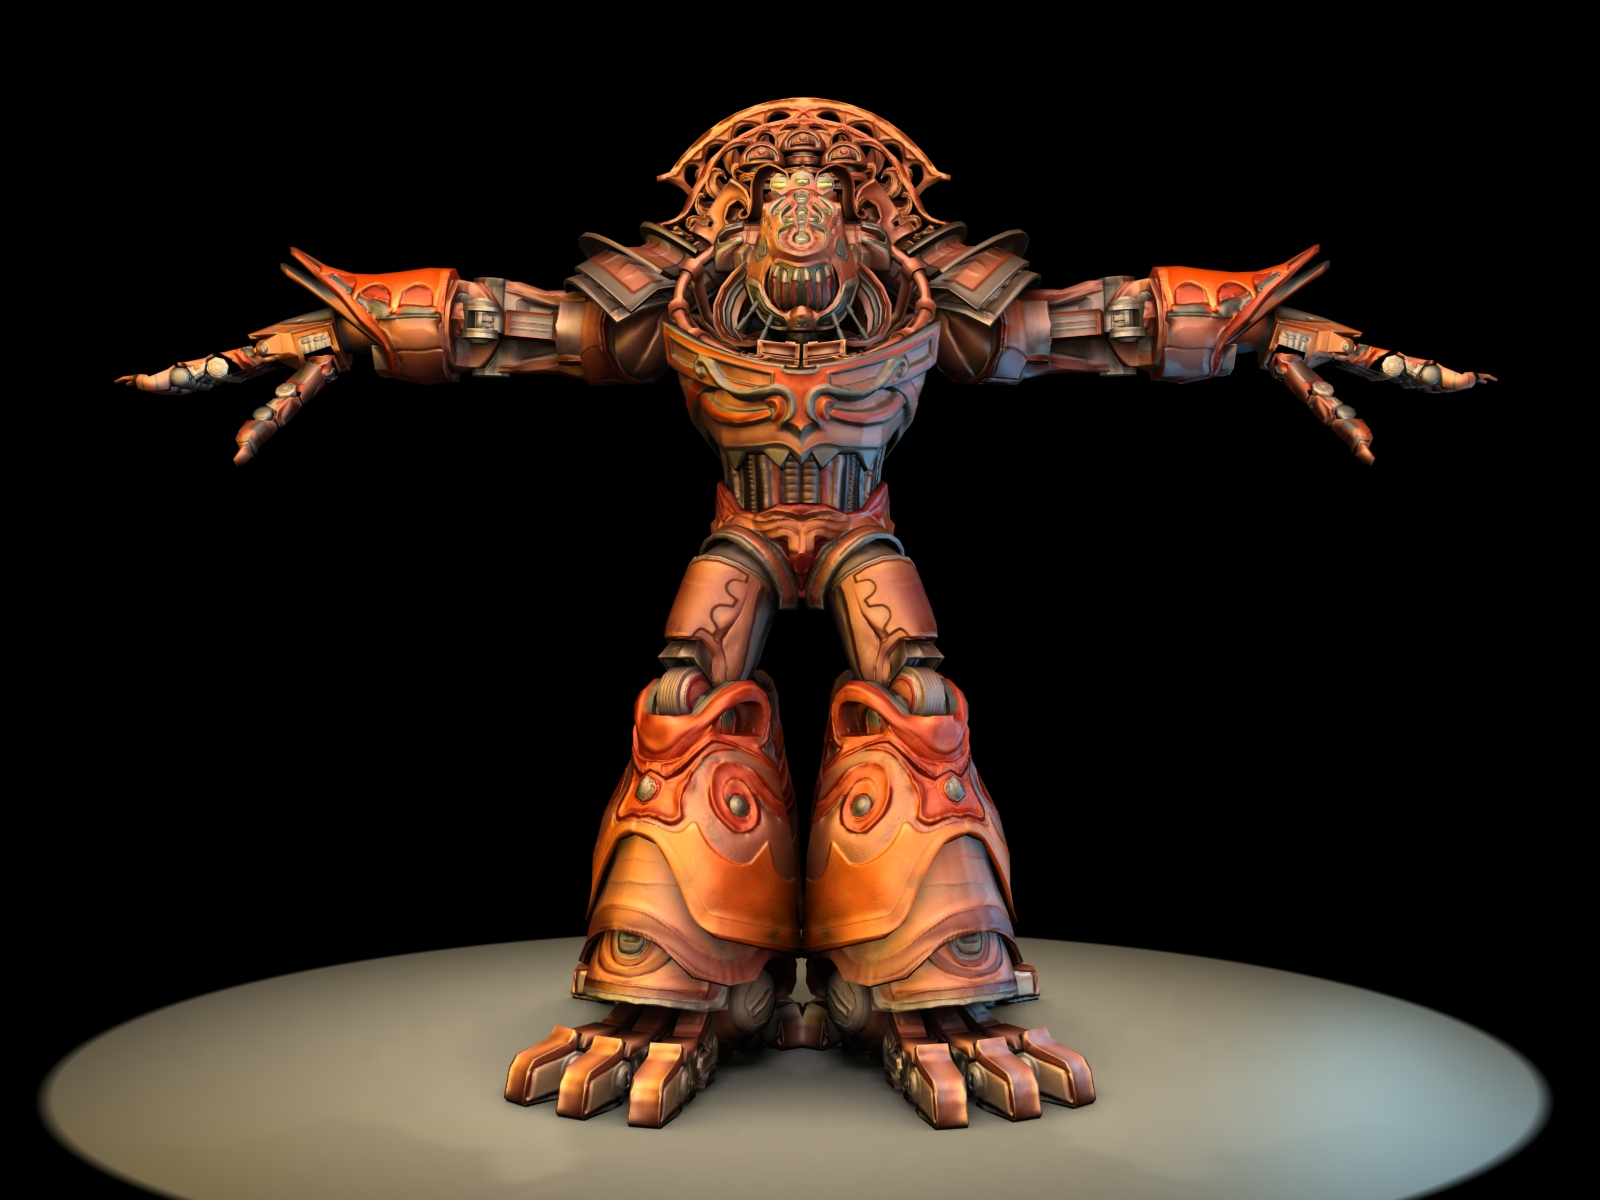 A 3D model done in ZBrush in 2008